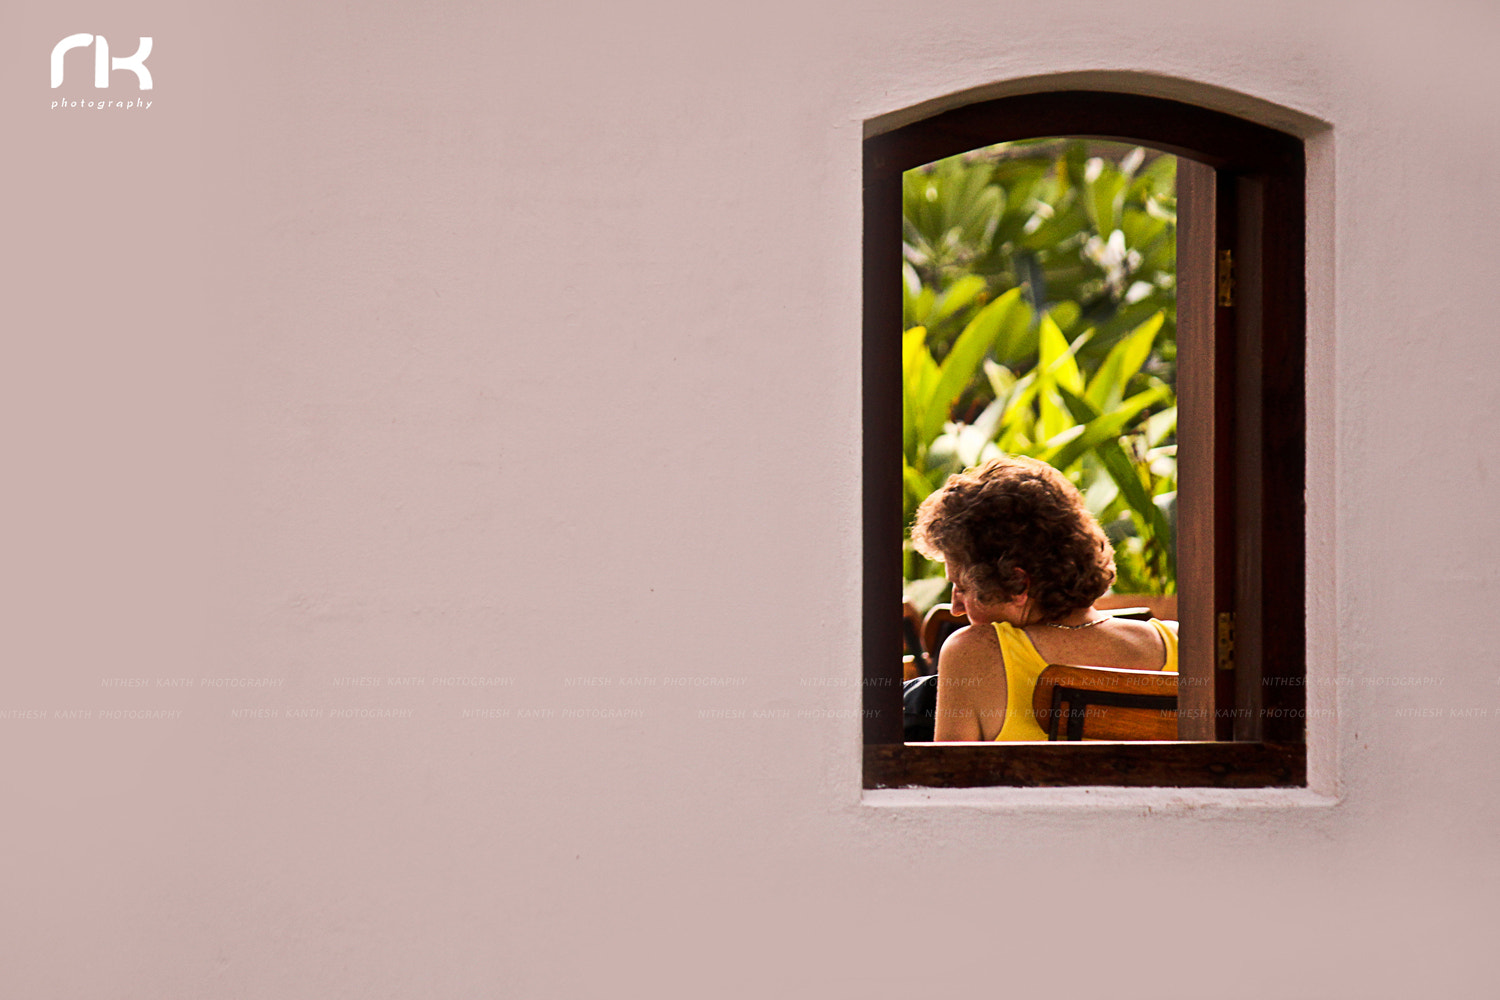 Photograph Through the windowpane by Nithesh Kanth on 500px